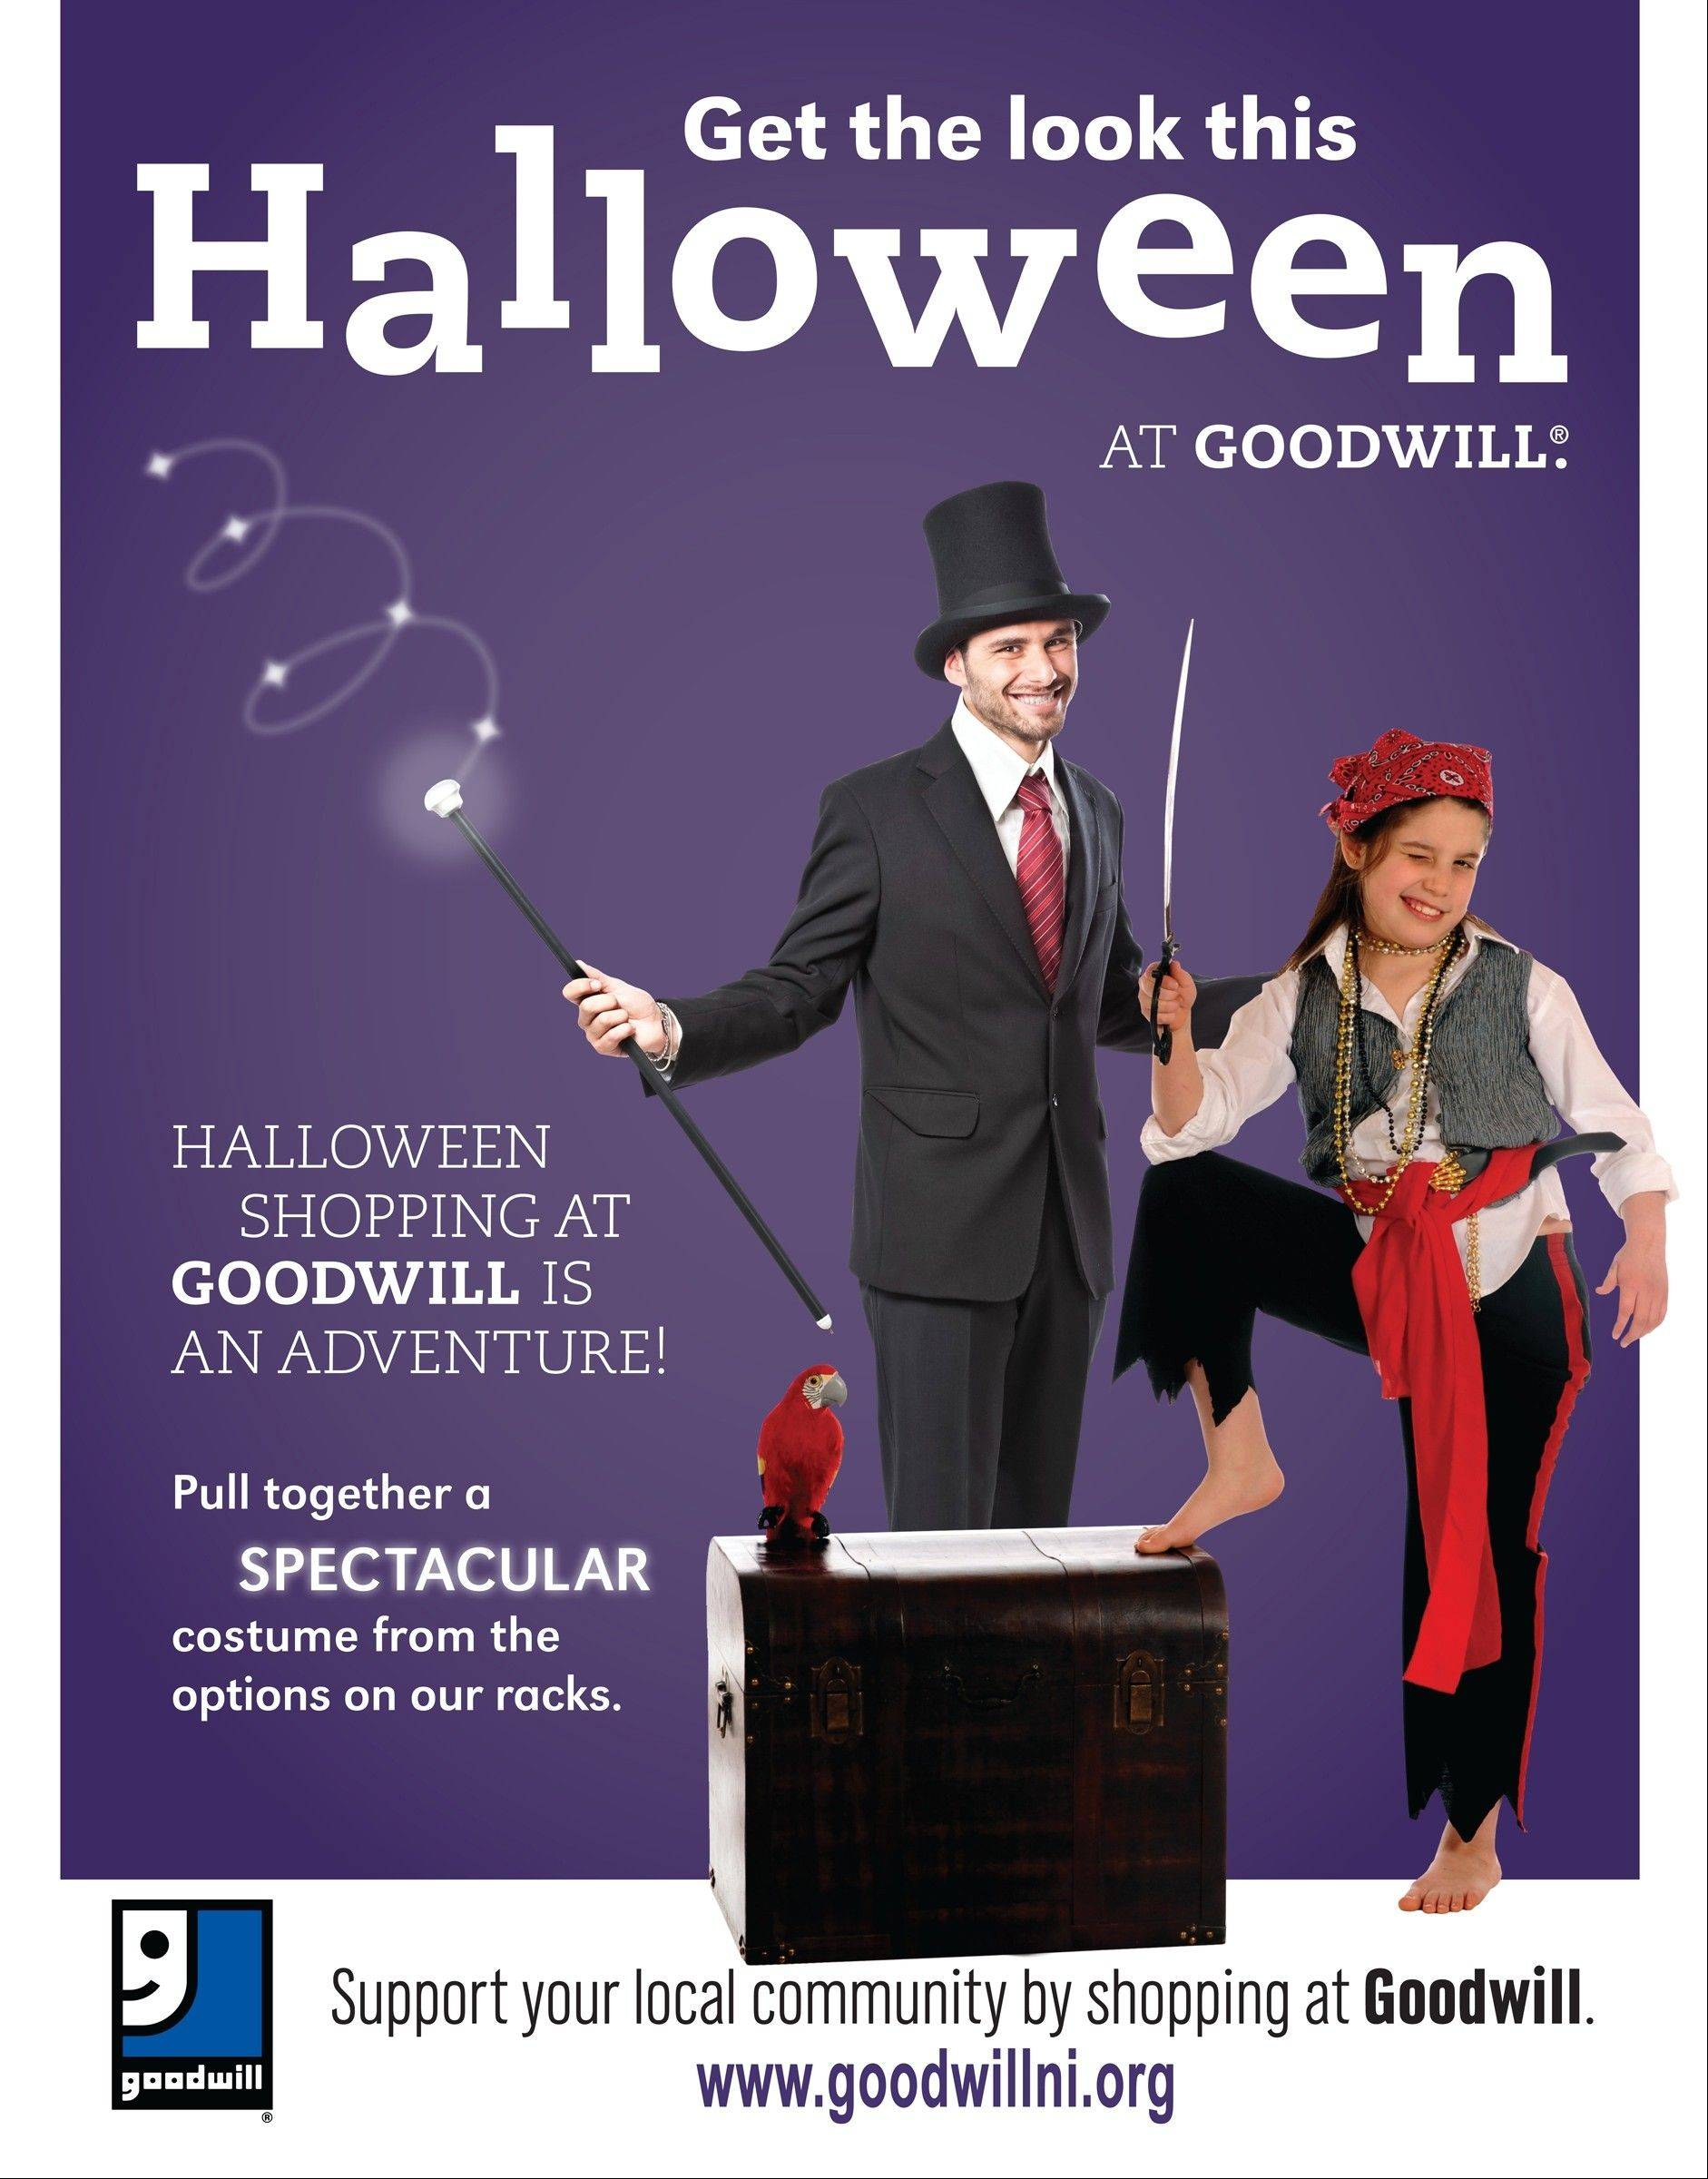 The people who donated that top hat or headscarf to Goodwill might not have envisioned those items would end up as props in Halloween costumes. But Halloween sales fund many Goodwill programs.